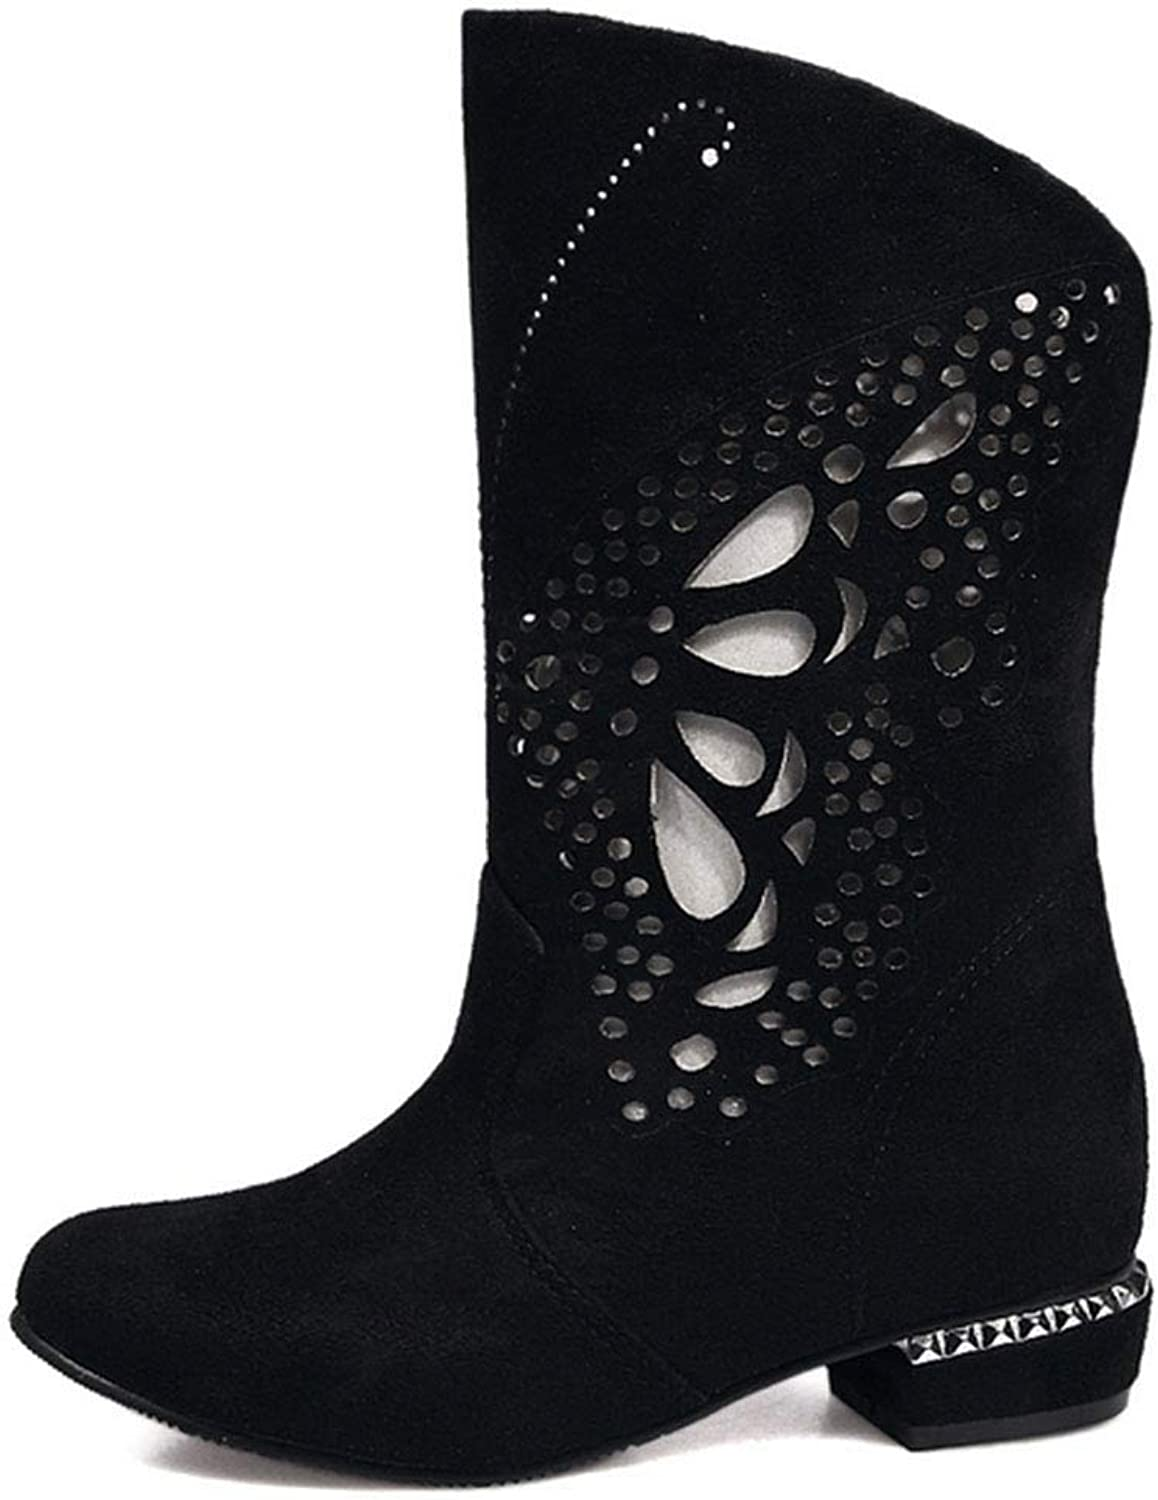 Women's Martin Boots Frosted Round Head Flat Low Heel Boots Hollow Butterfly Pattern Solid color Overshoes